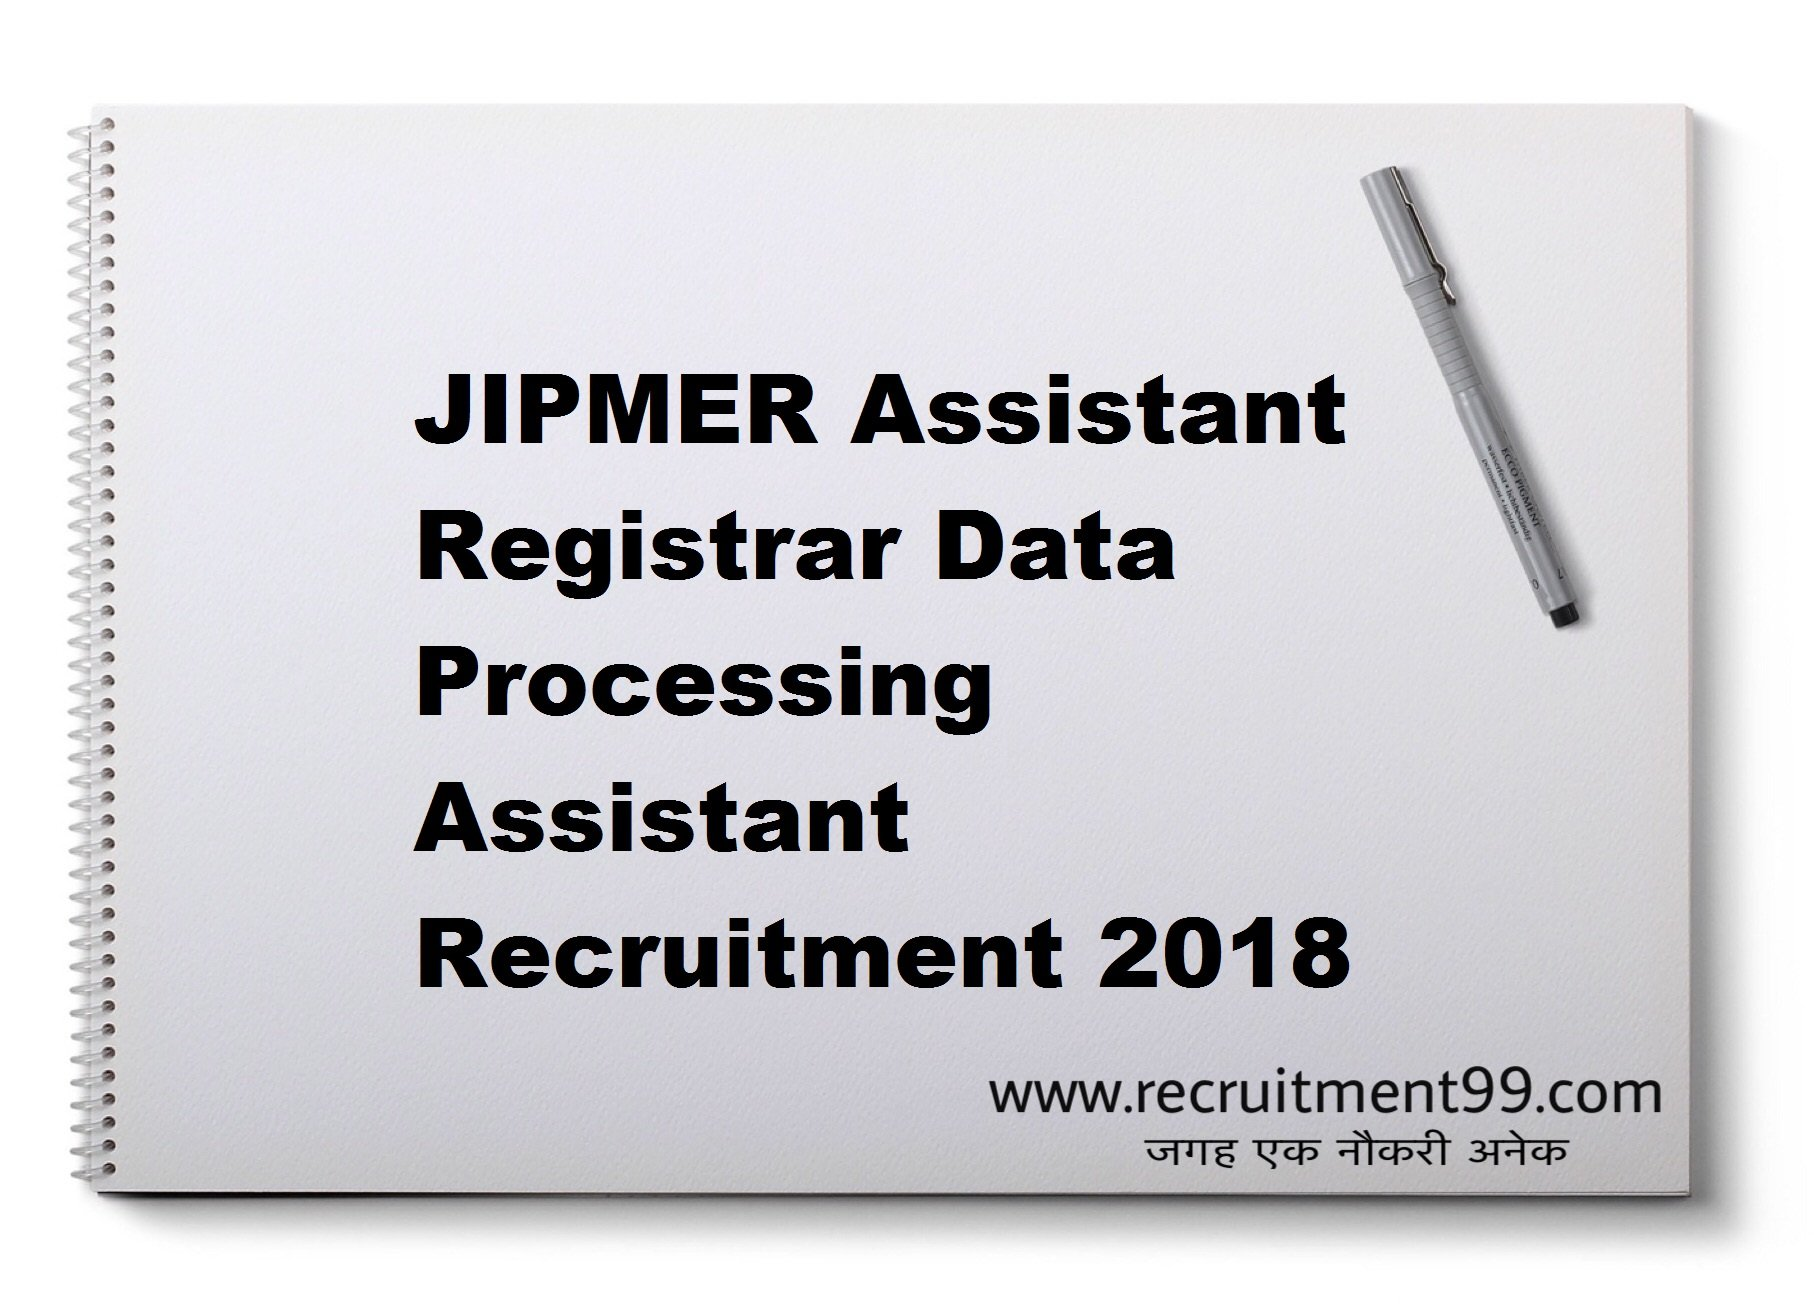 JIPMER Assistant Registrar Data Processing Assistant Recruitment Admit Card Result 2018